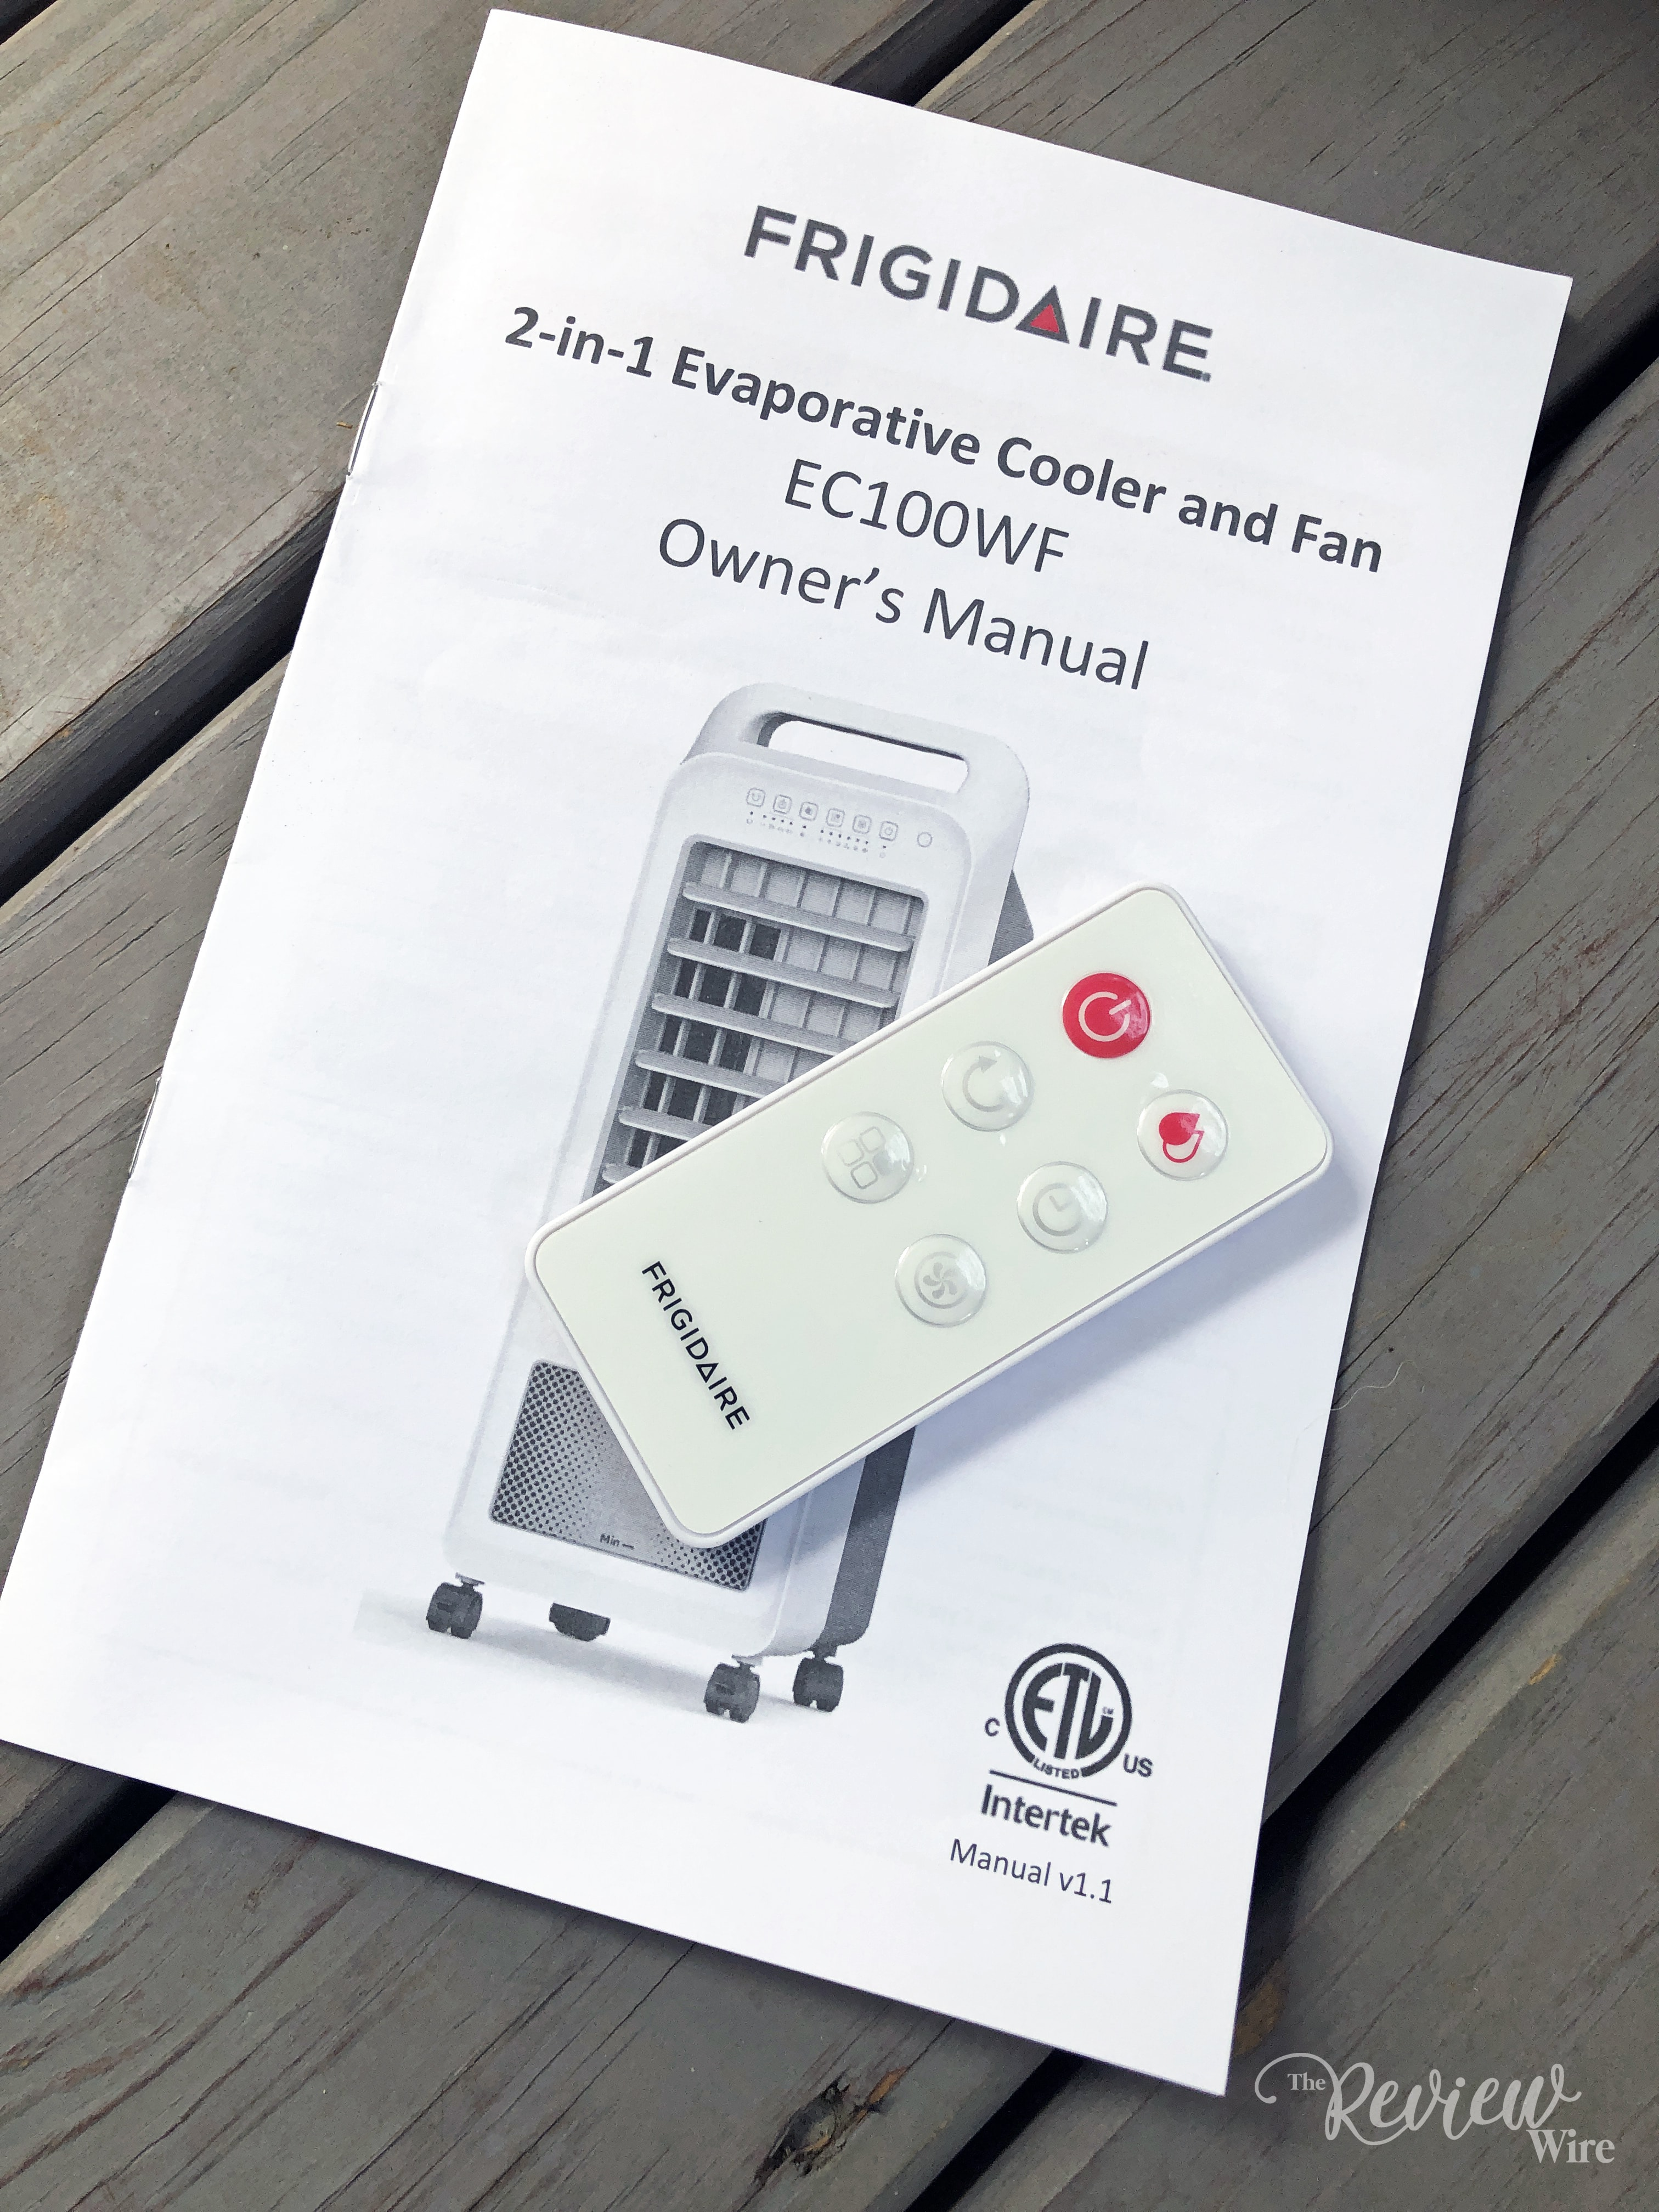 The Review Wire - Remote for the Frigidaire 2-in-1 Personal Evaporative Air Cooler and Fan